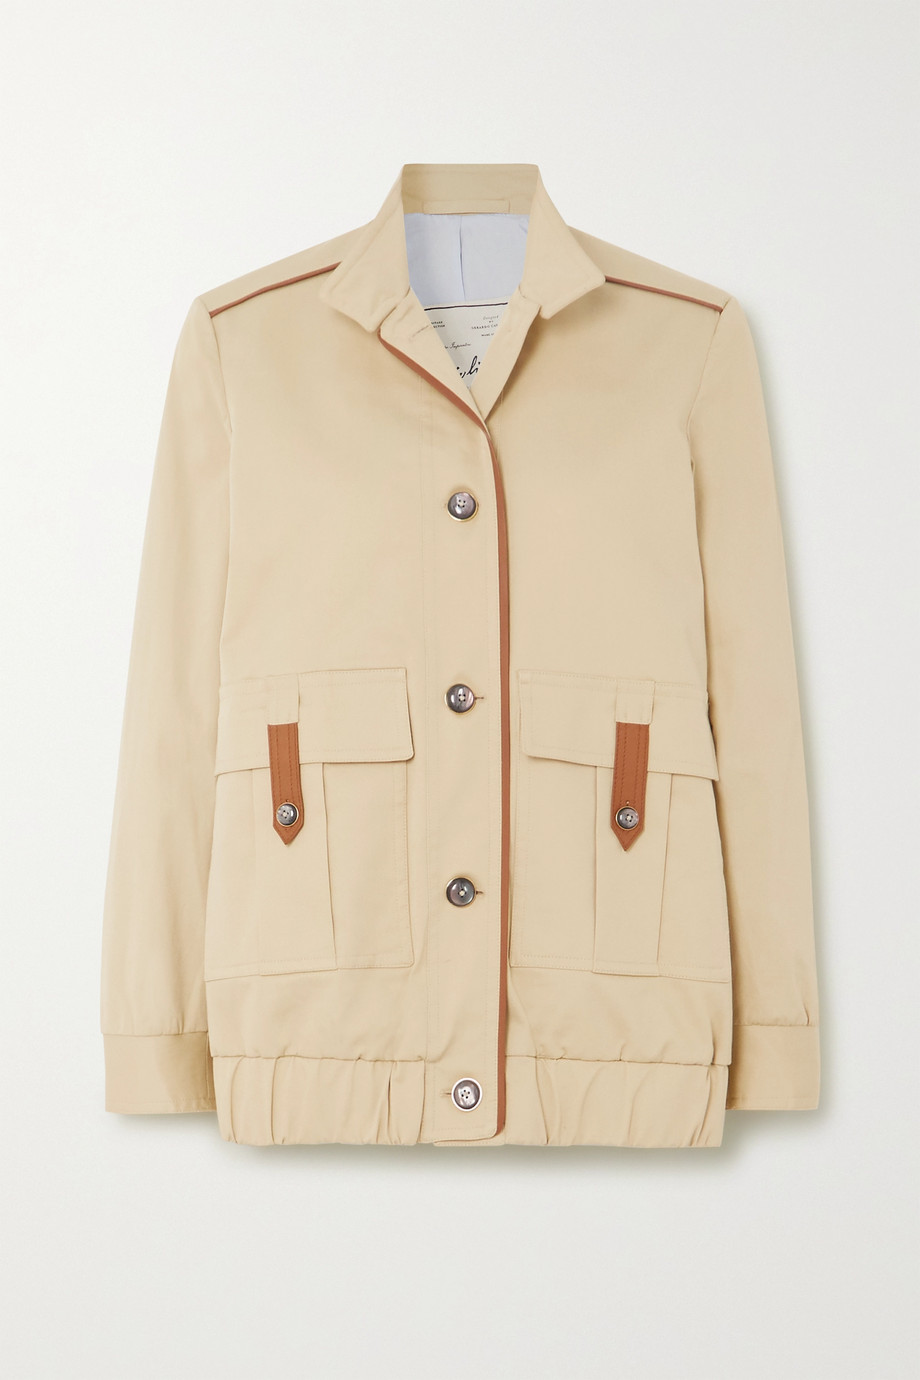 Giuliva Heritage + NET SUSTAIN + Space for Giants The Finch leather-trimmed cotton-blend jacket